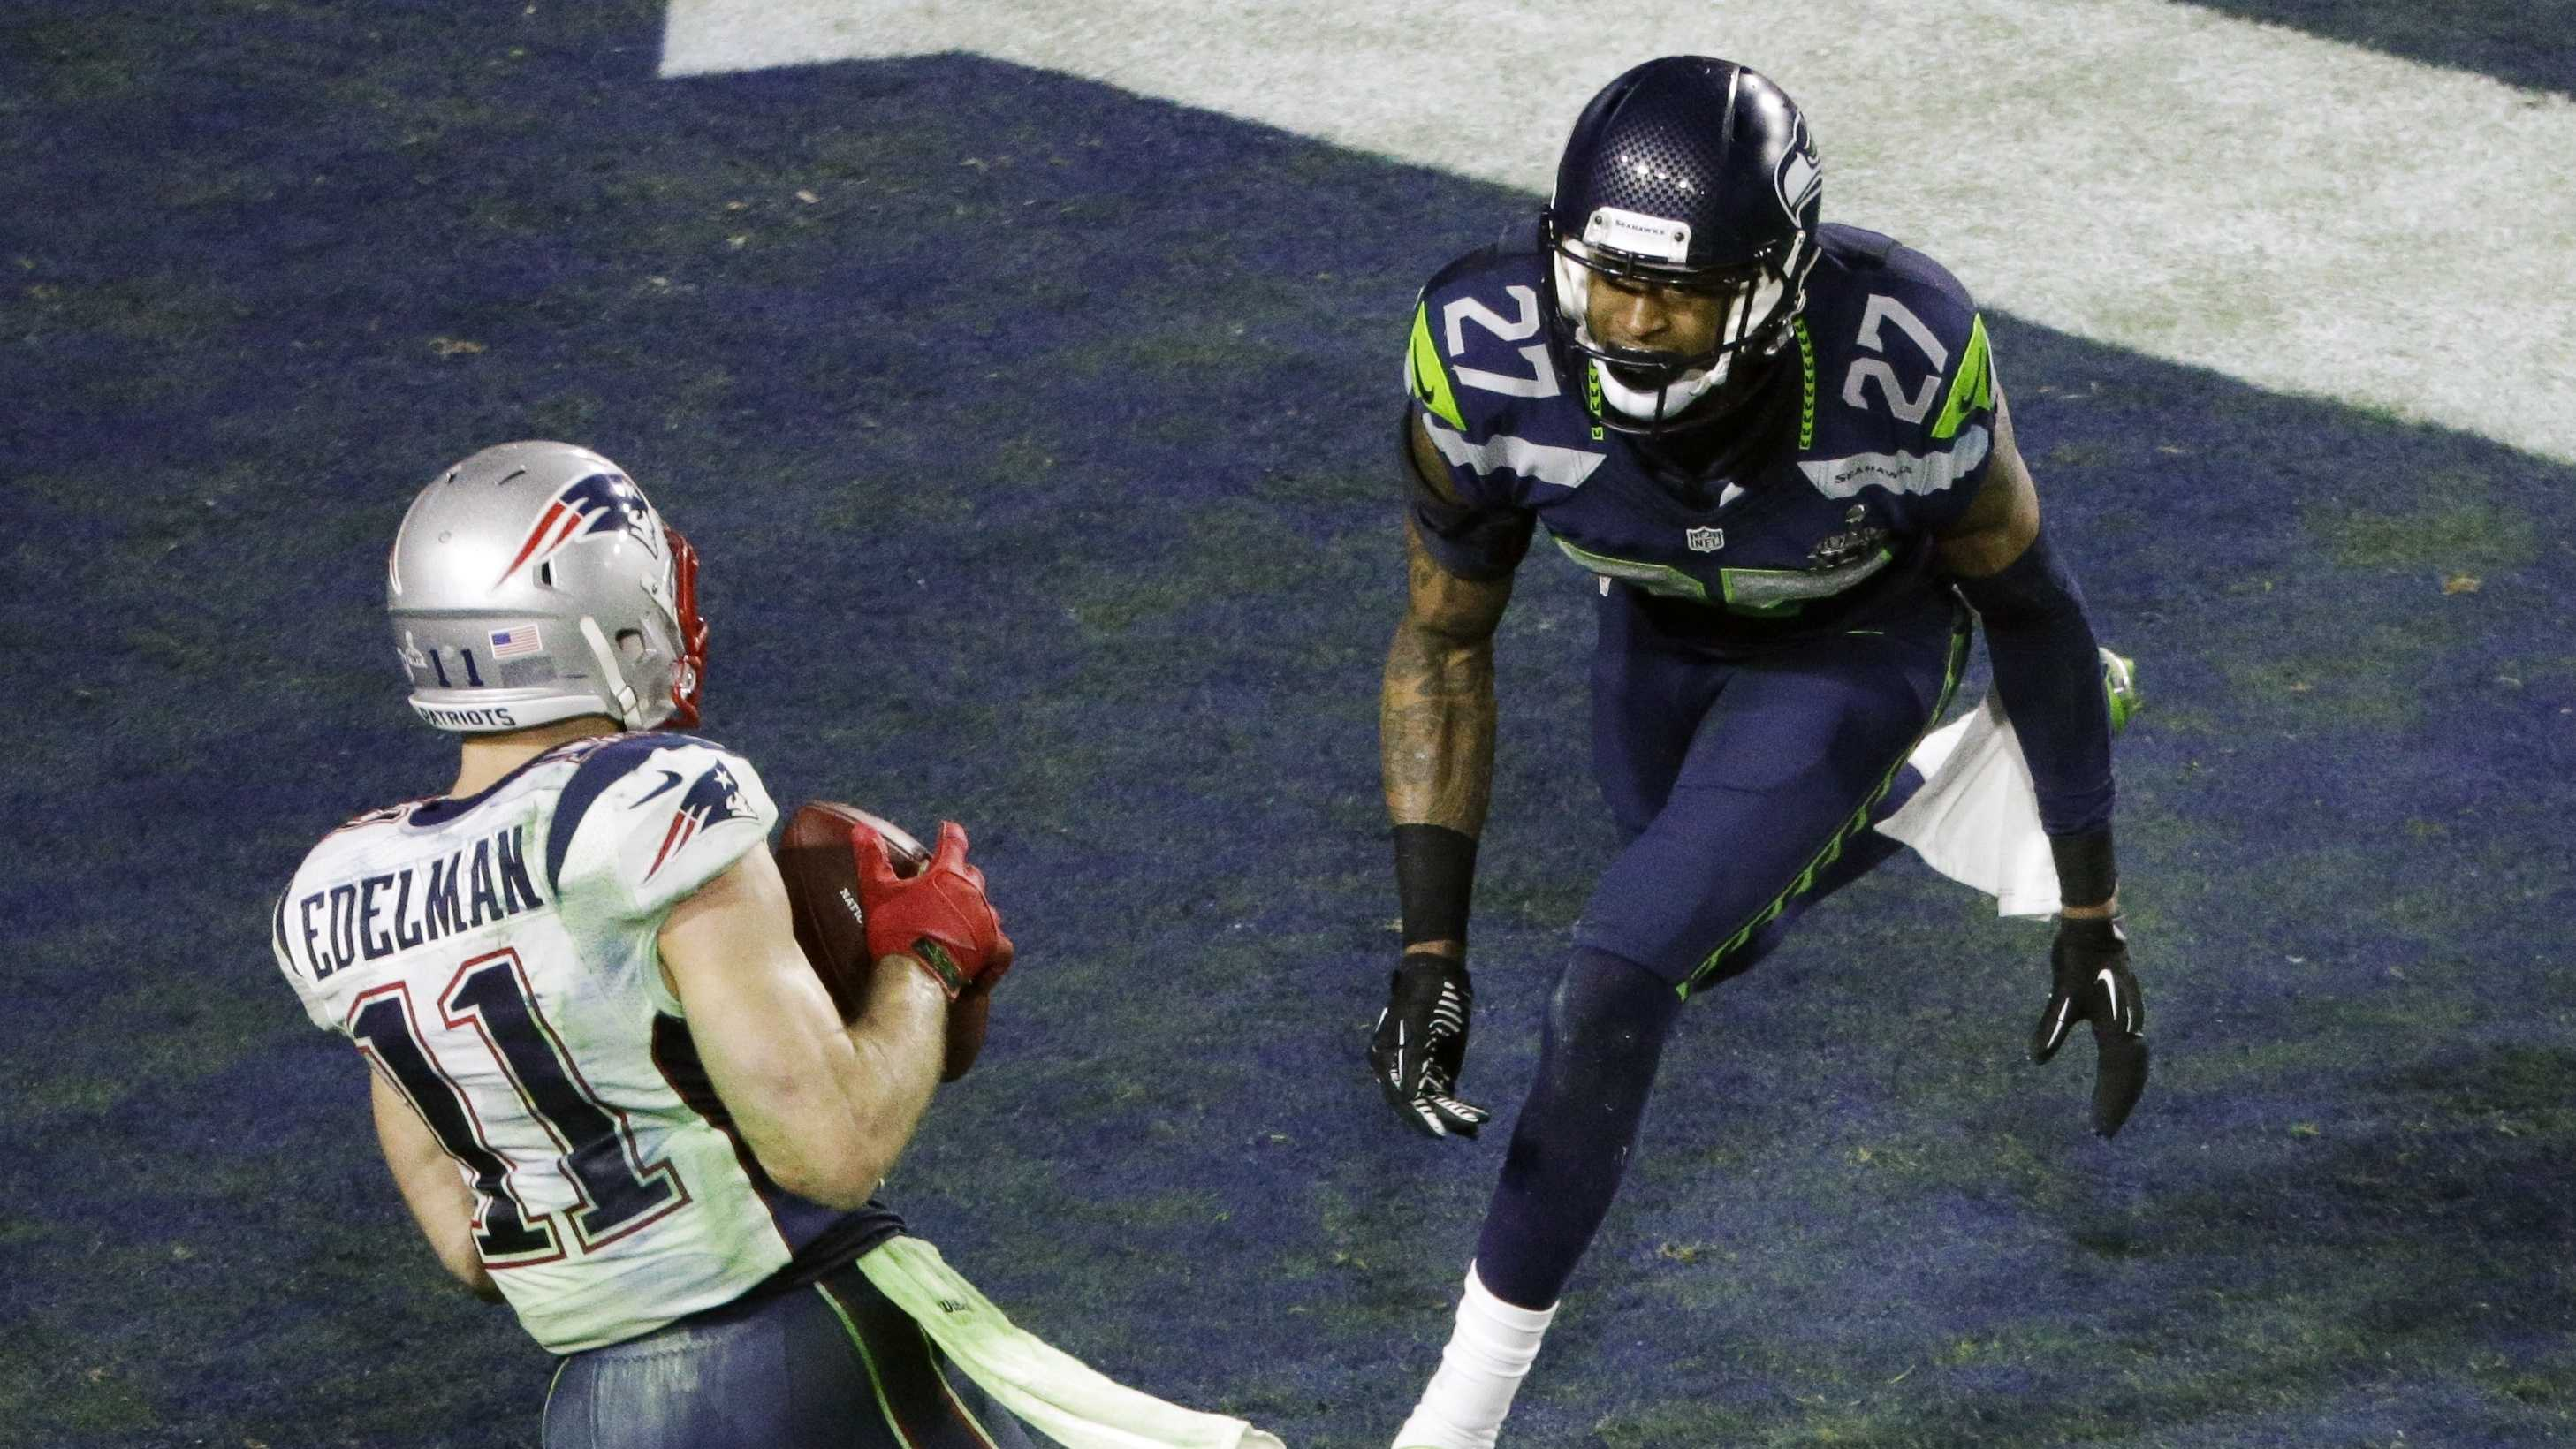 New England Patriots wide receiver Julian Edelman (11) makes a touchdown catch against Seattle Seahawks cornerback Tharold Simon (27) during the second half of NFL Super Bowl XLIX football game Sunday, Feb. 1, 2015, in Glendale, Ariz.